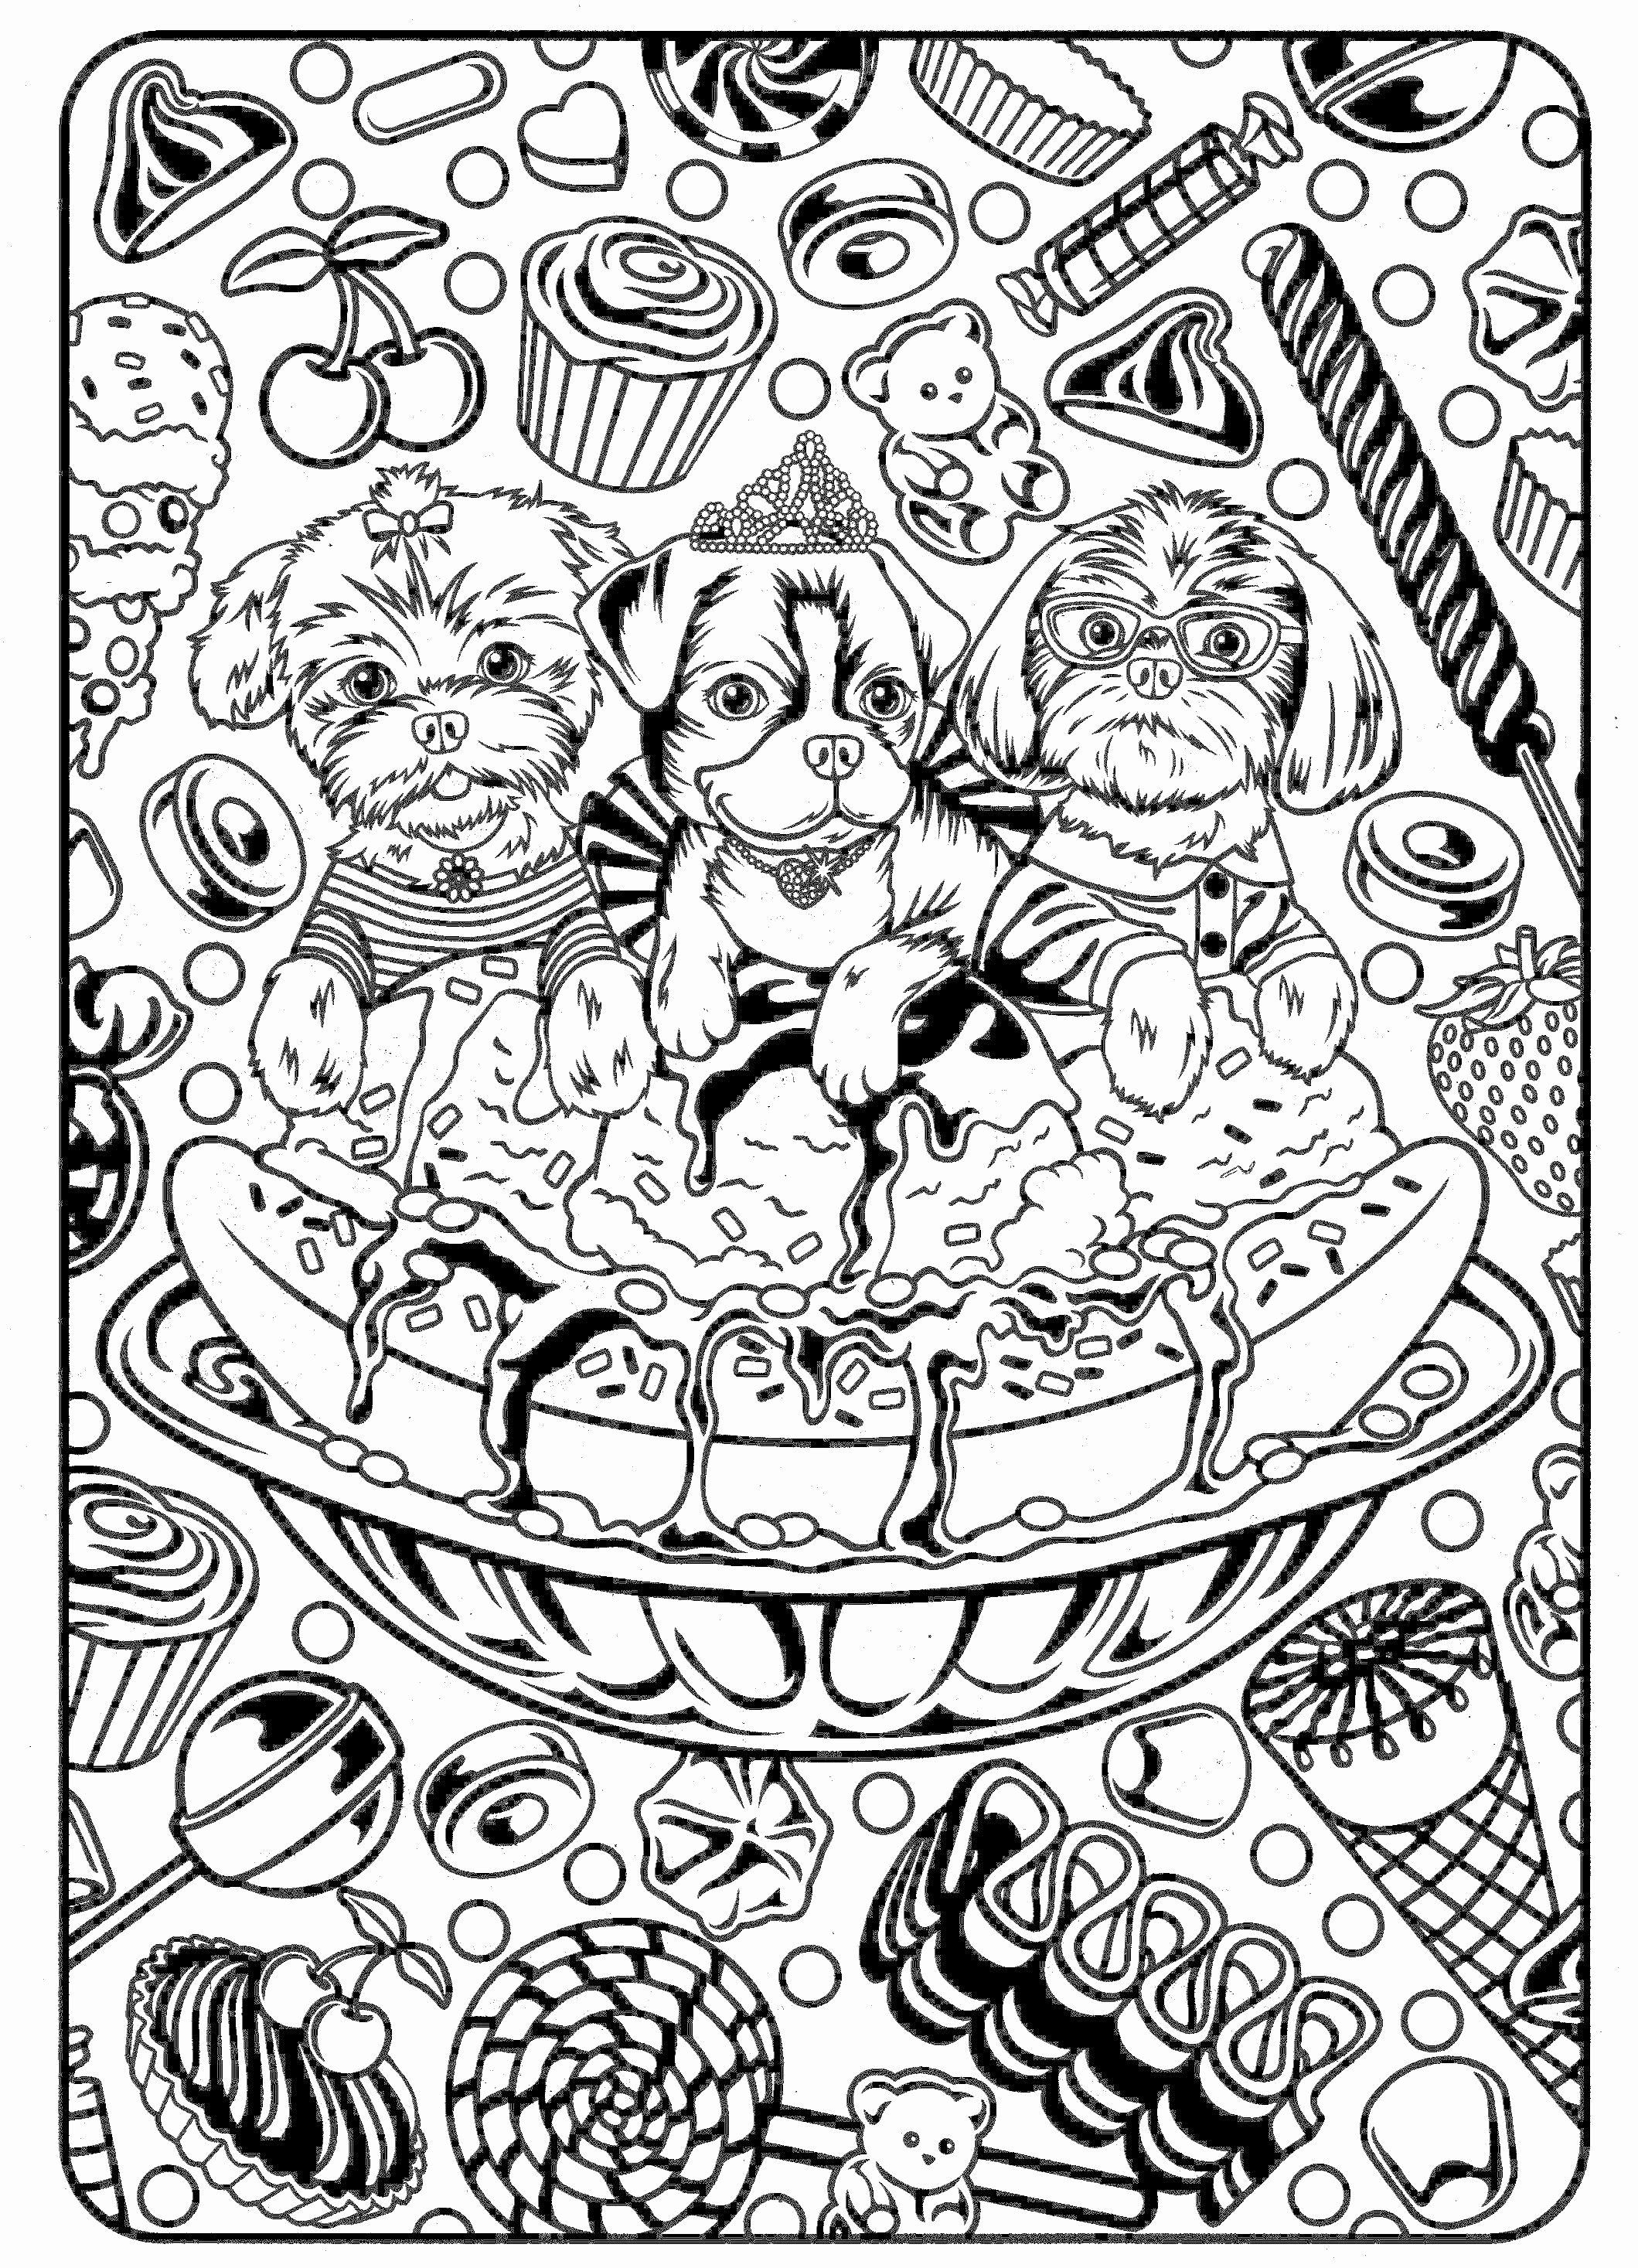 Anatomy Coloring Book For Kids New Best 20th Century Fox Logo Coloring Pages Kursknews Pokemon Coloring Pages Space Coloring Pages Cool Coloring Pages